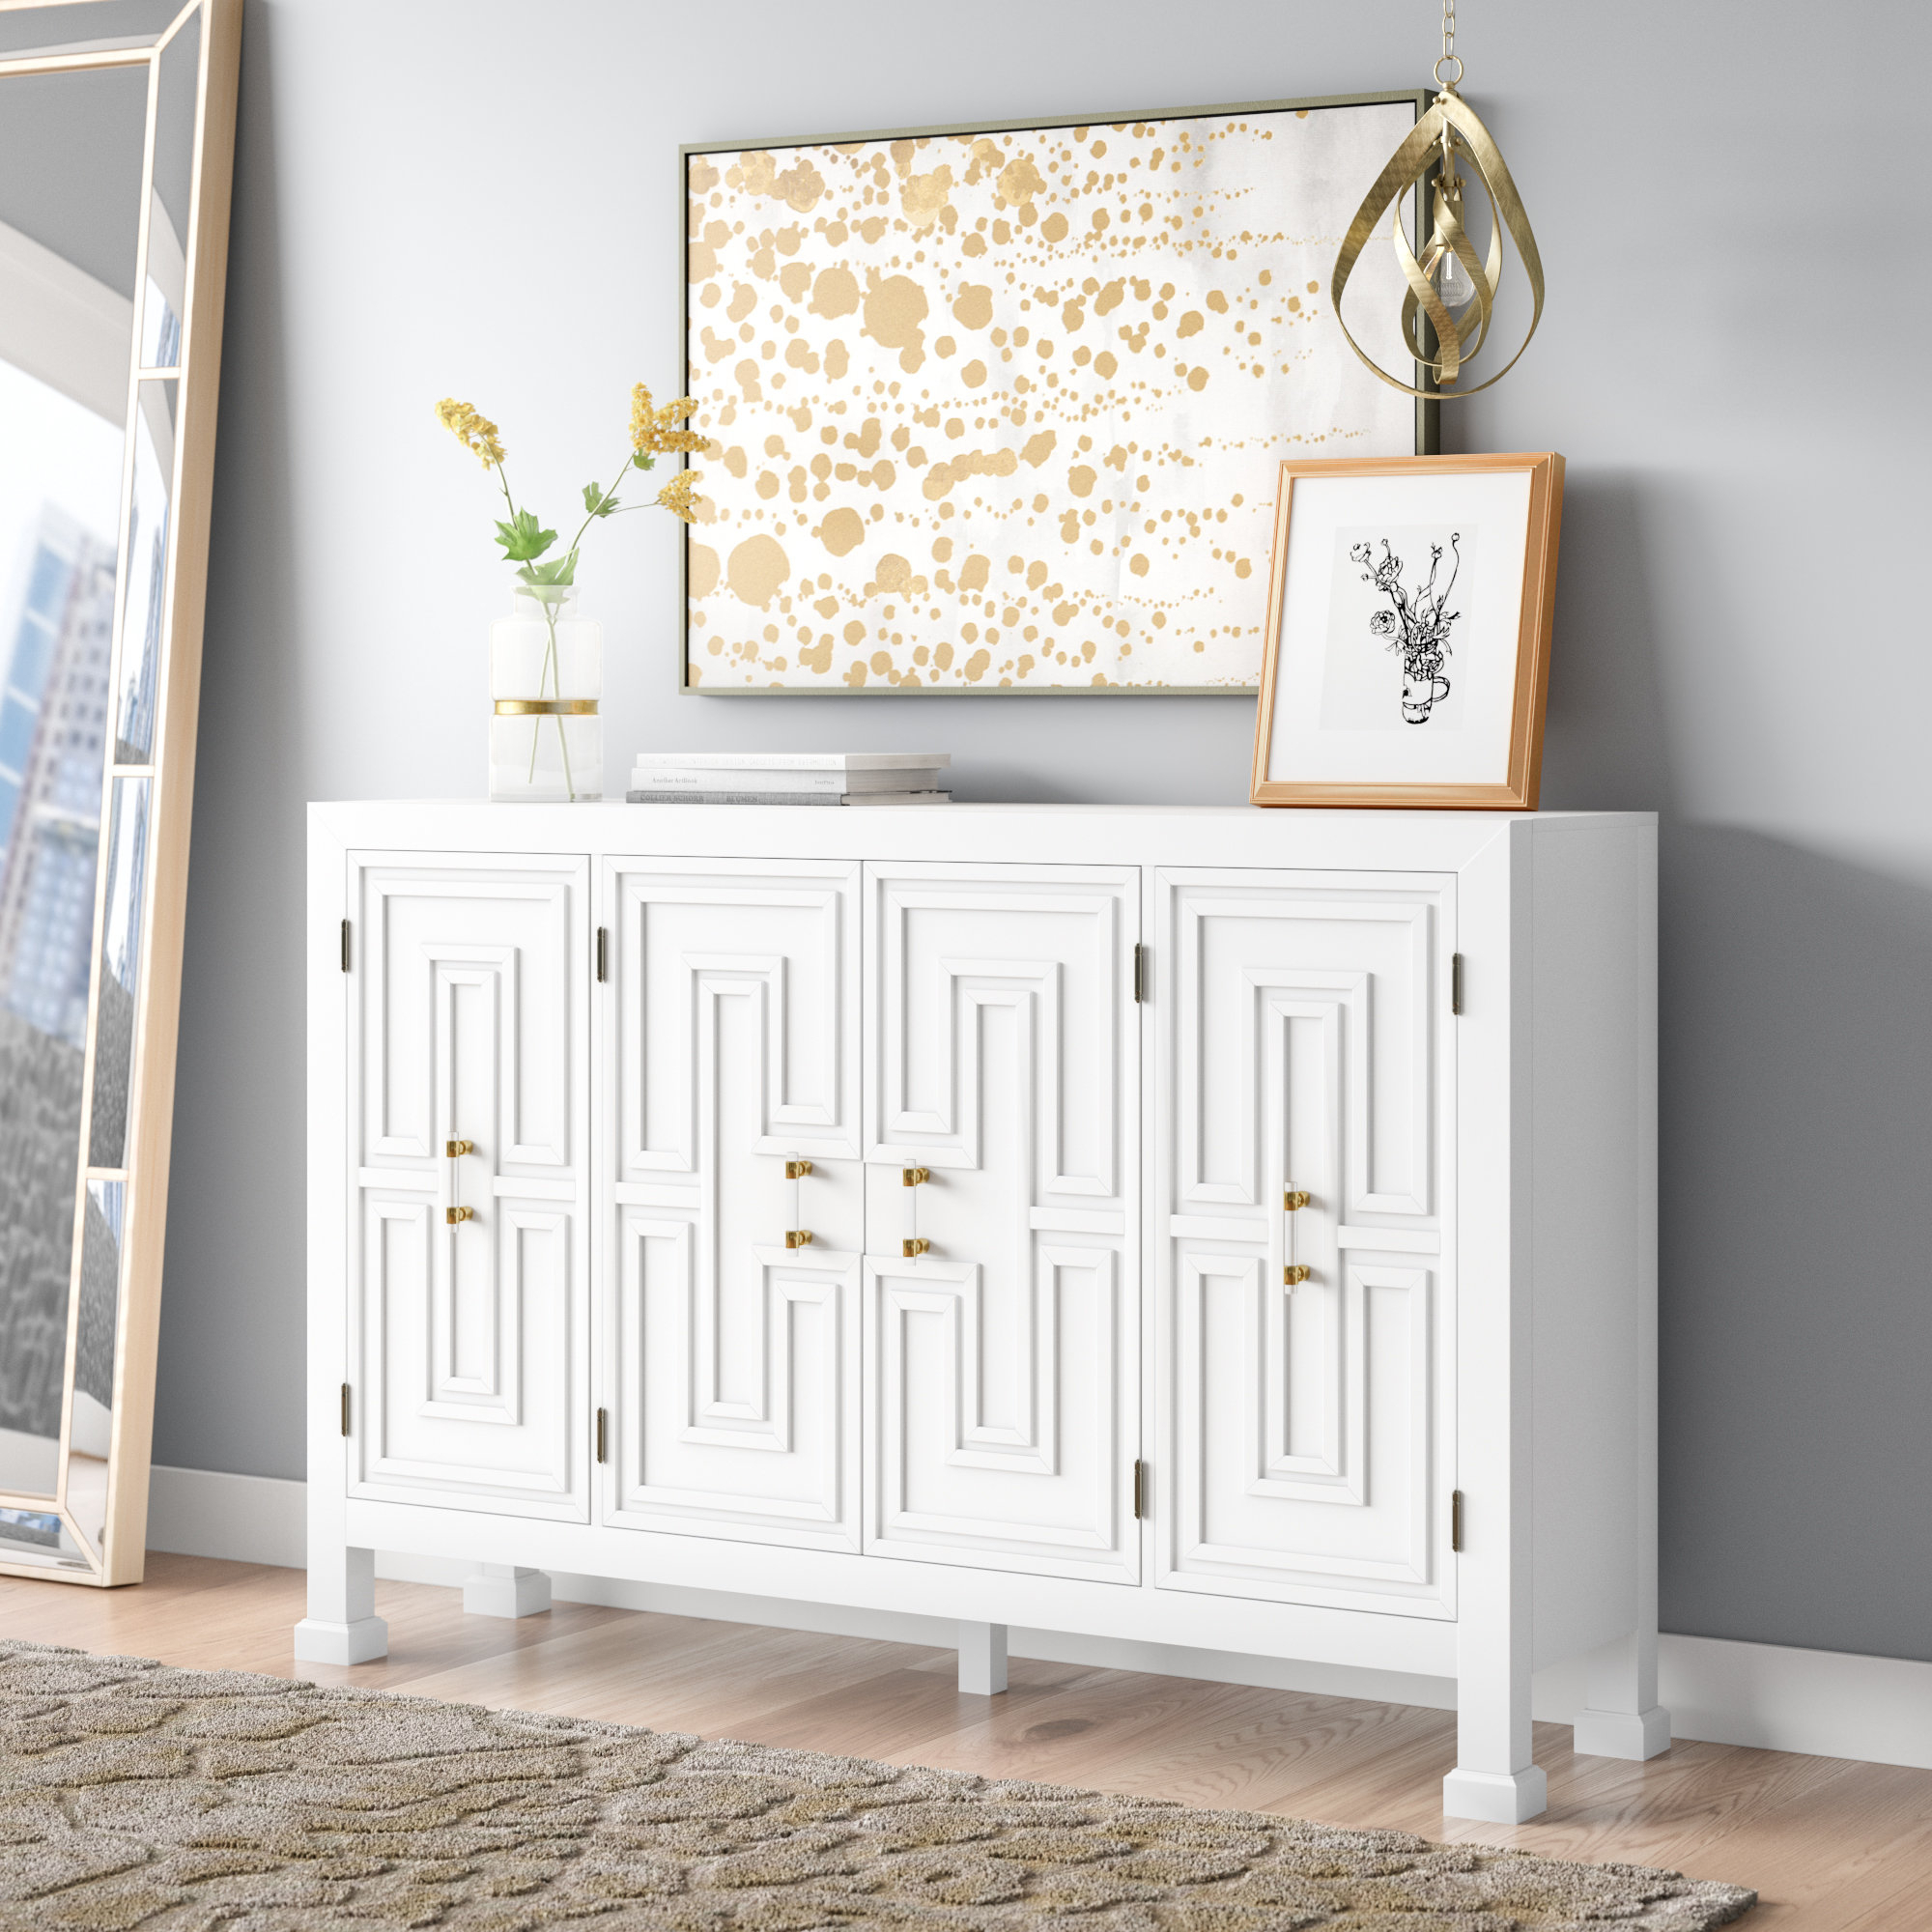 Mercer41 Lainey Credenza & Reviews | Wayfair Pertaining To Lainey Credenzas (View 16 of 30)